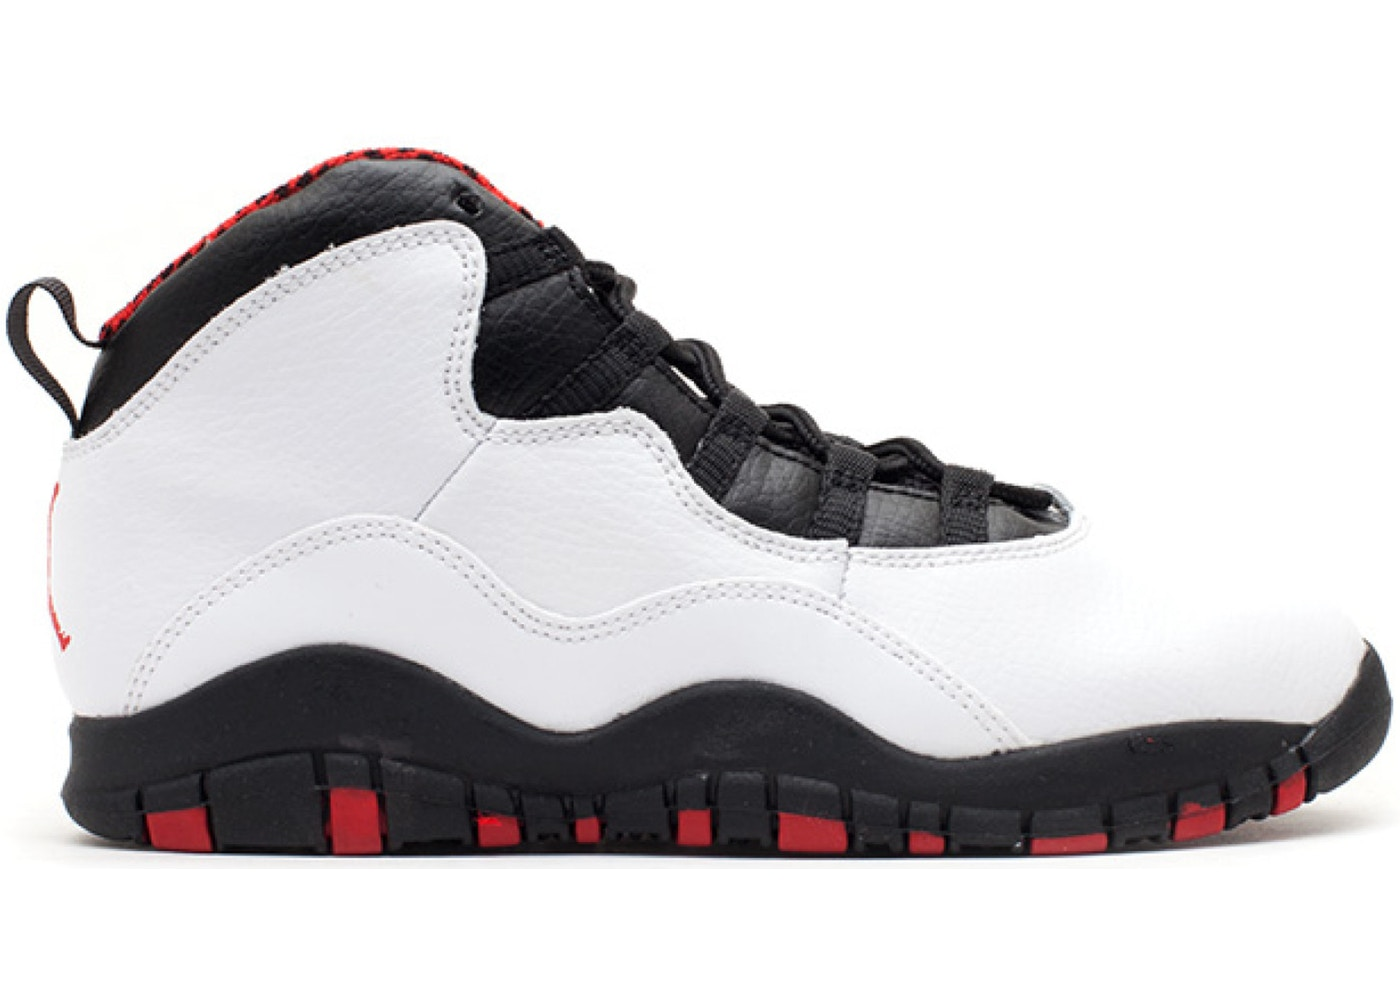 1337dbcda3e Sell. or Ask. Size: 2.5. View All Bids. Jordan 10 Retro Chicago ...